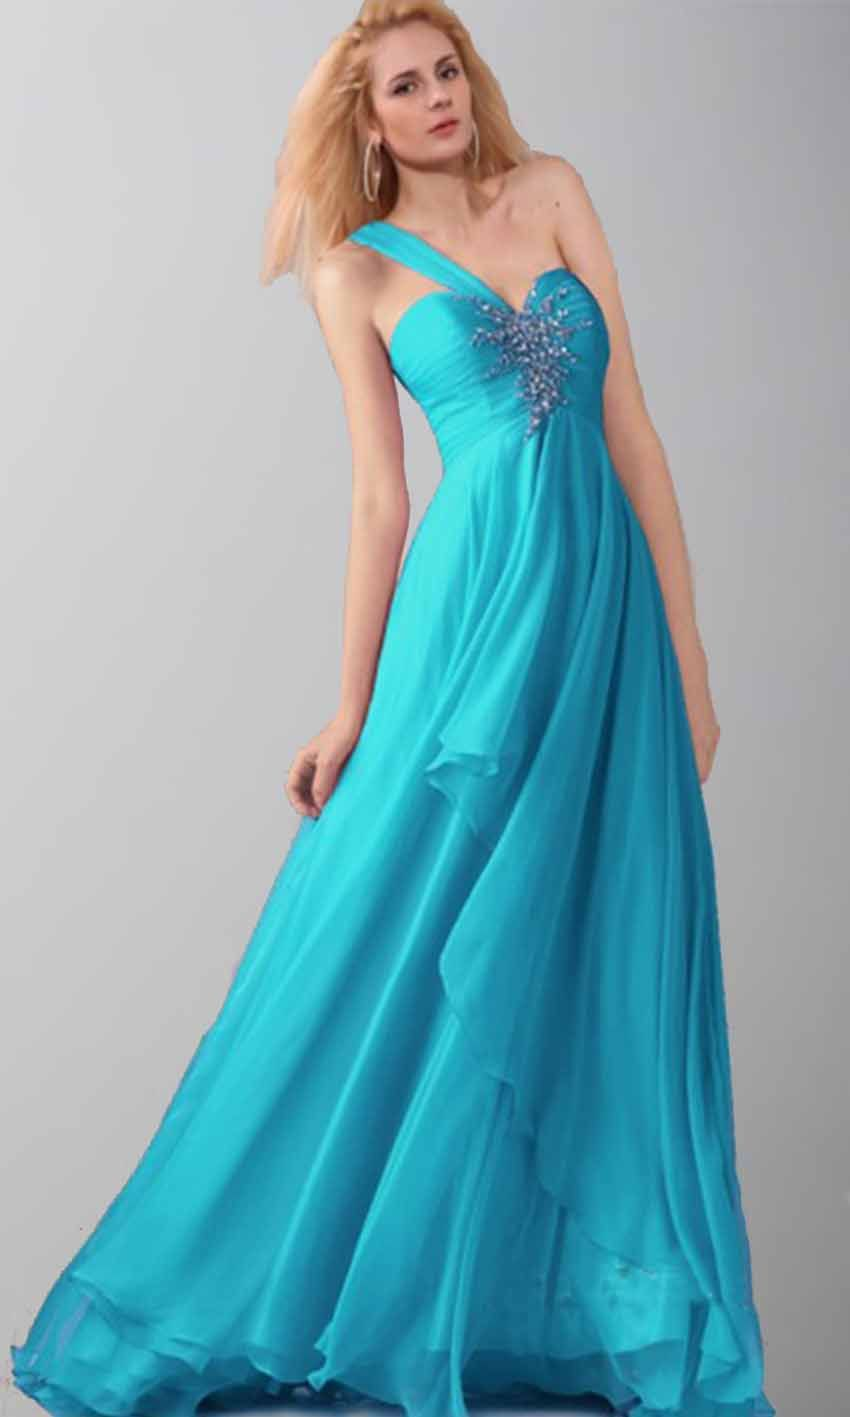 Flowing Sequin One Shoulder Long Prom Dresses KSP414 | uk prom ...